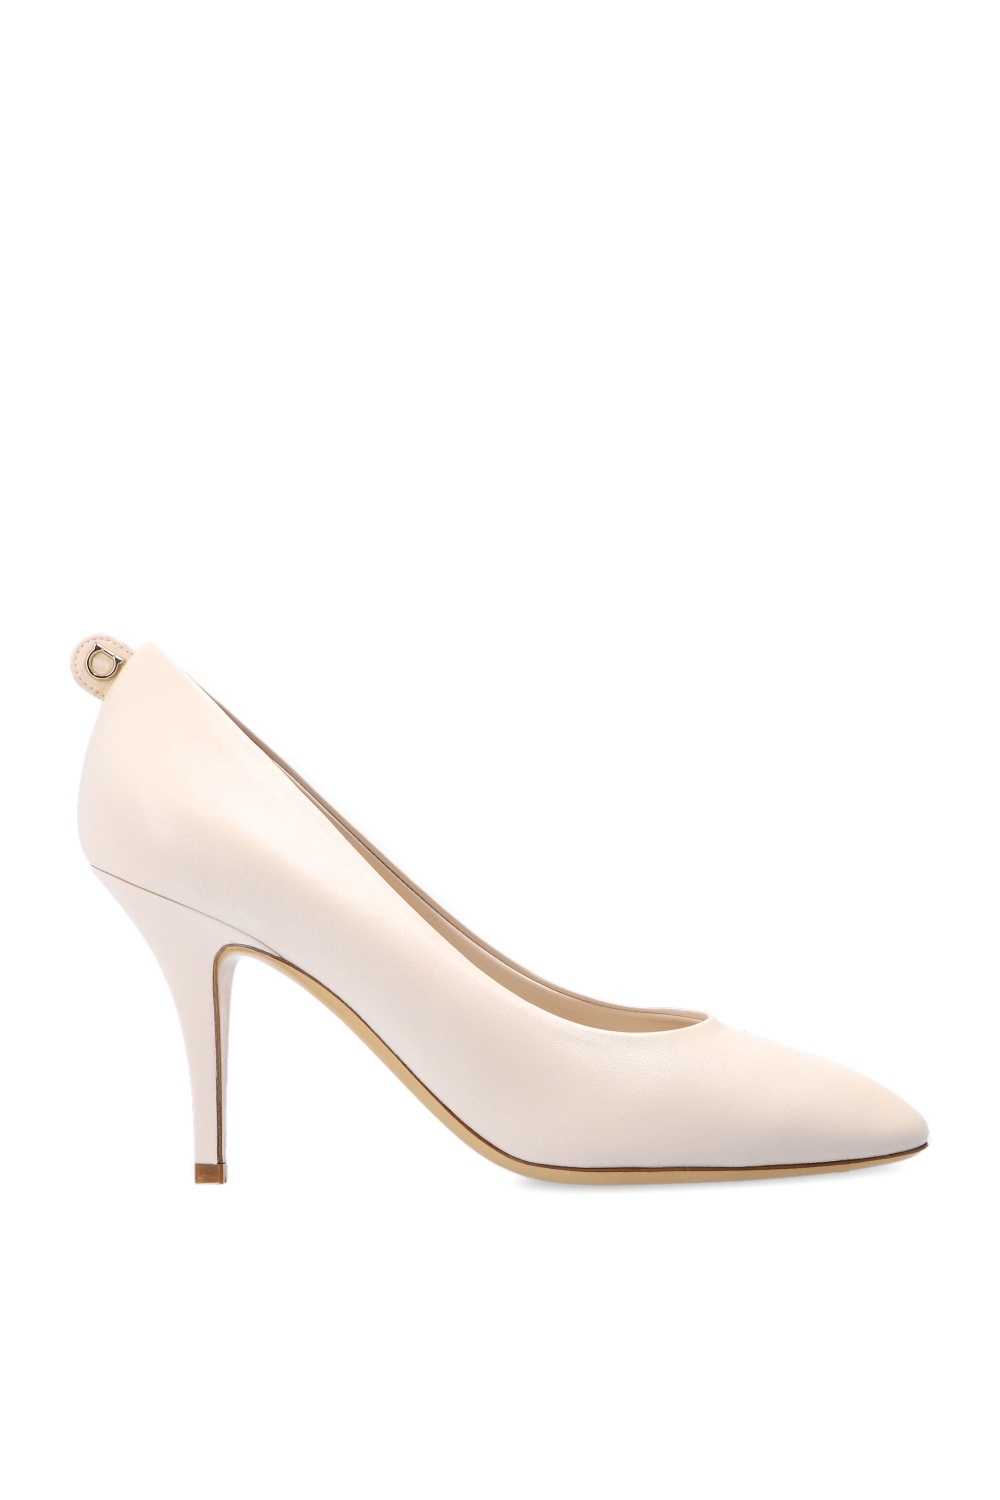 Salvatore Ferragamo 'Judy' stiletto pumps